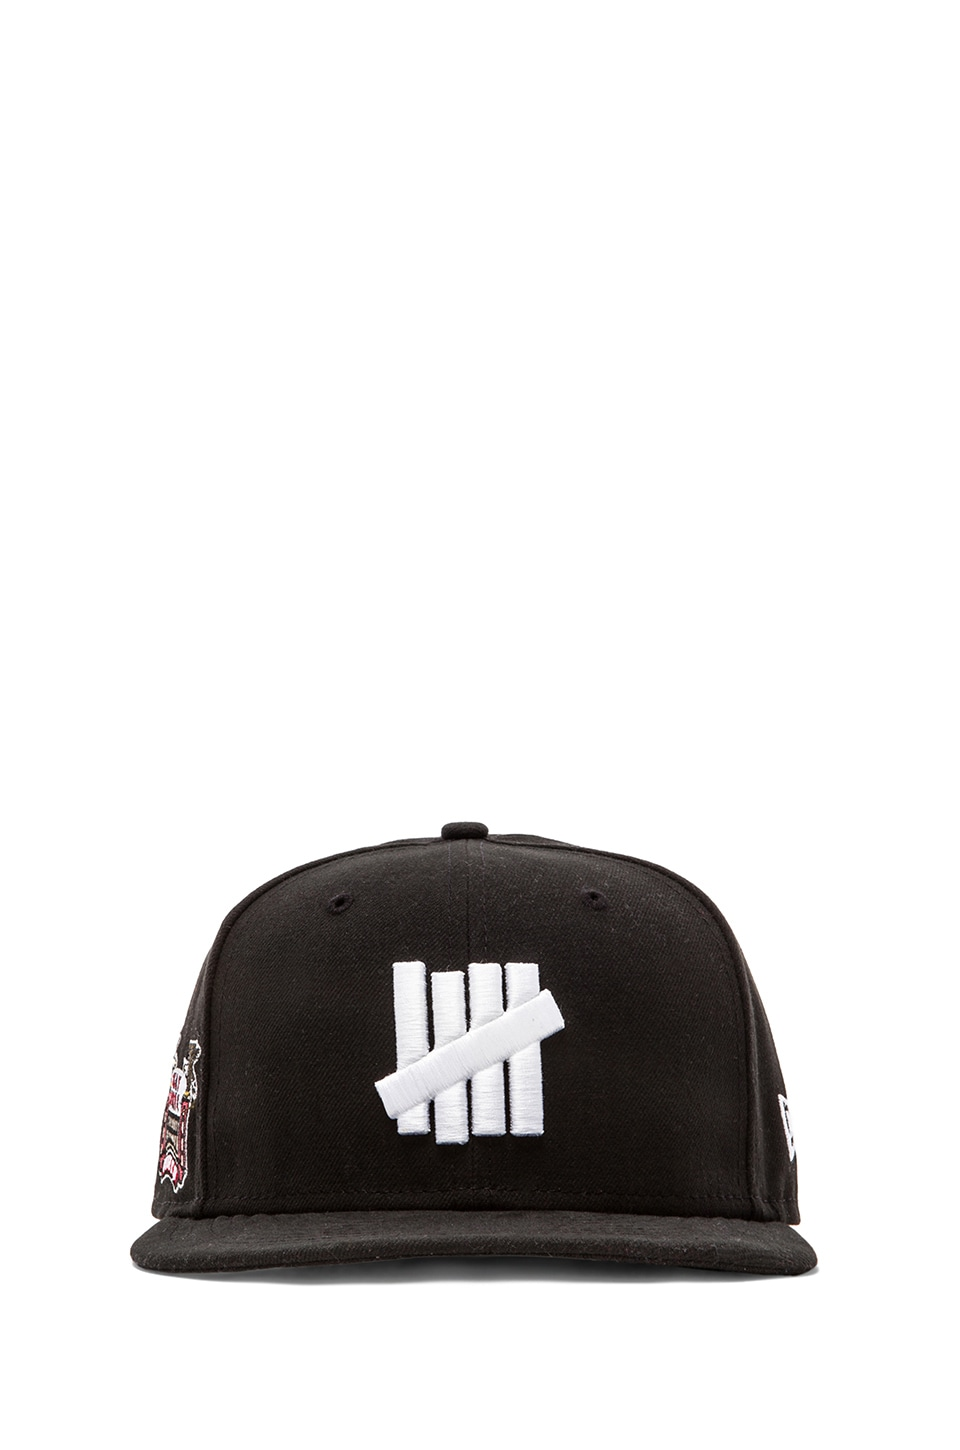 Undefeated 5 Strike SU14 Hat in Black